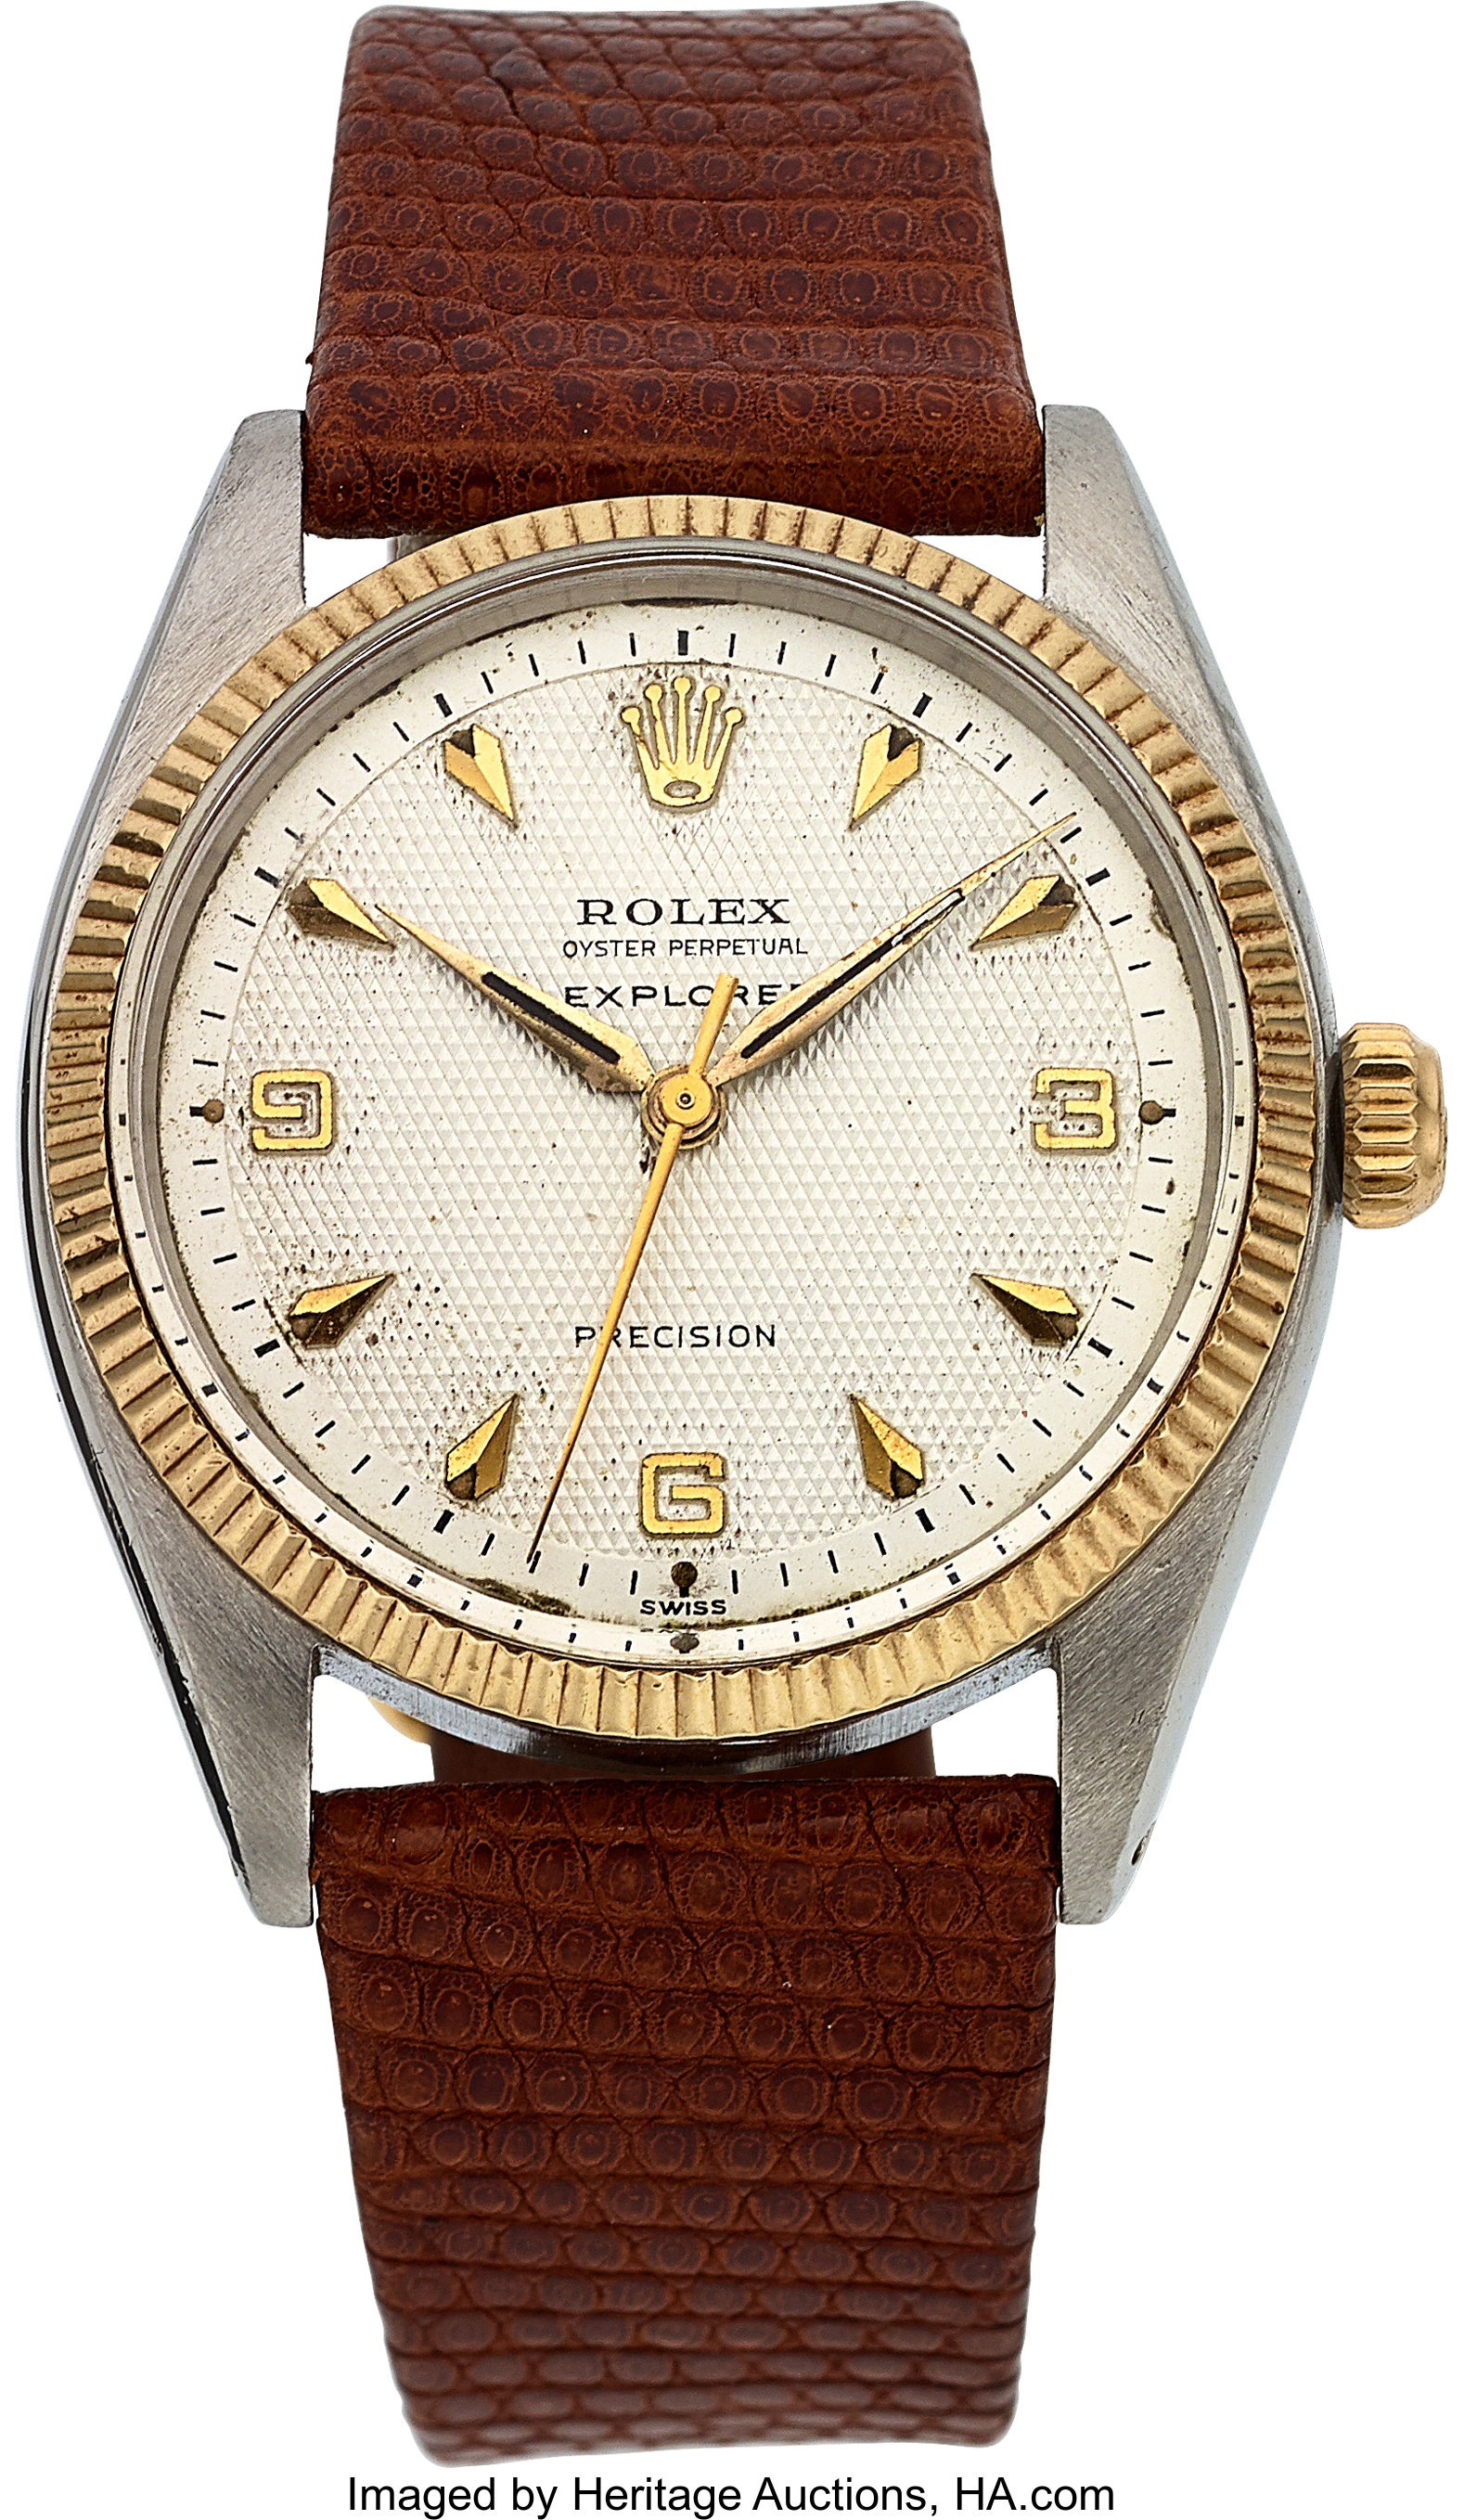 Rolex Ref. 5501 Explorer Honeycomb Dial Oyster Perpetual Precision,   Lot #54173   Heritage Auctions